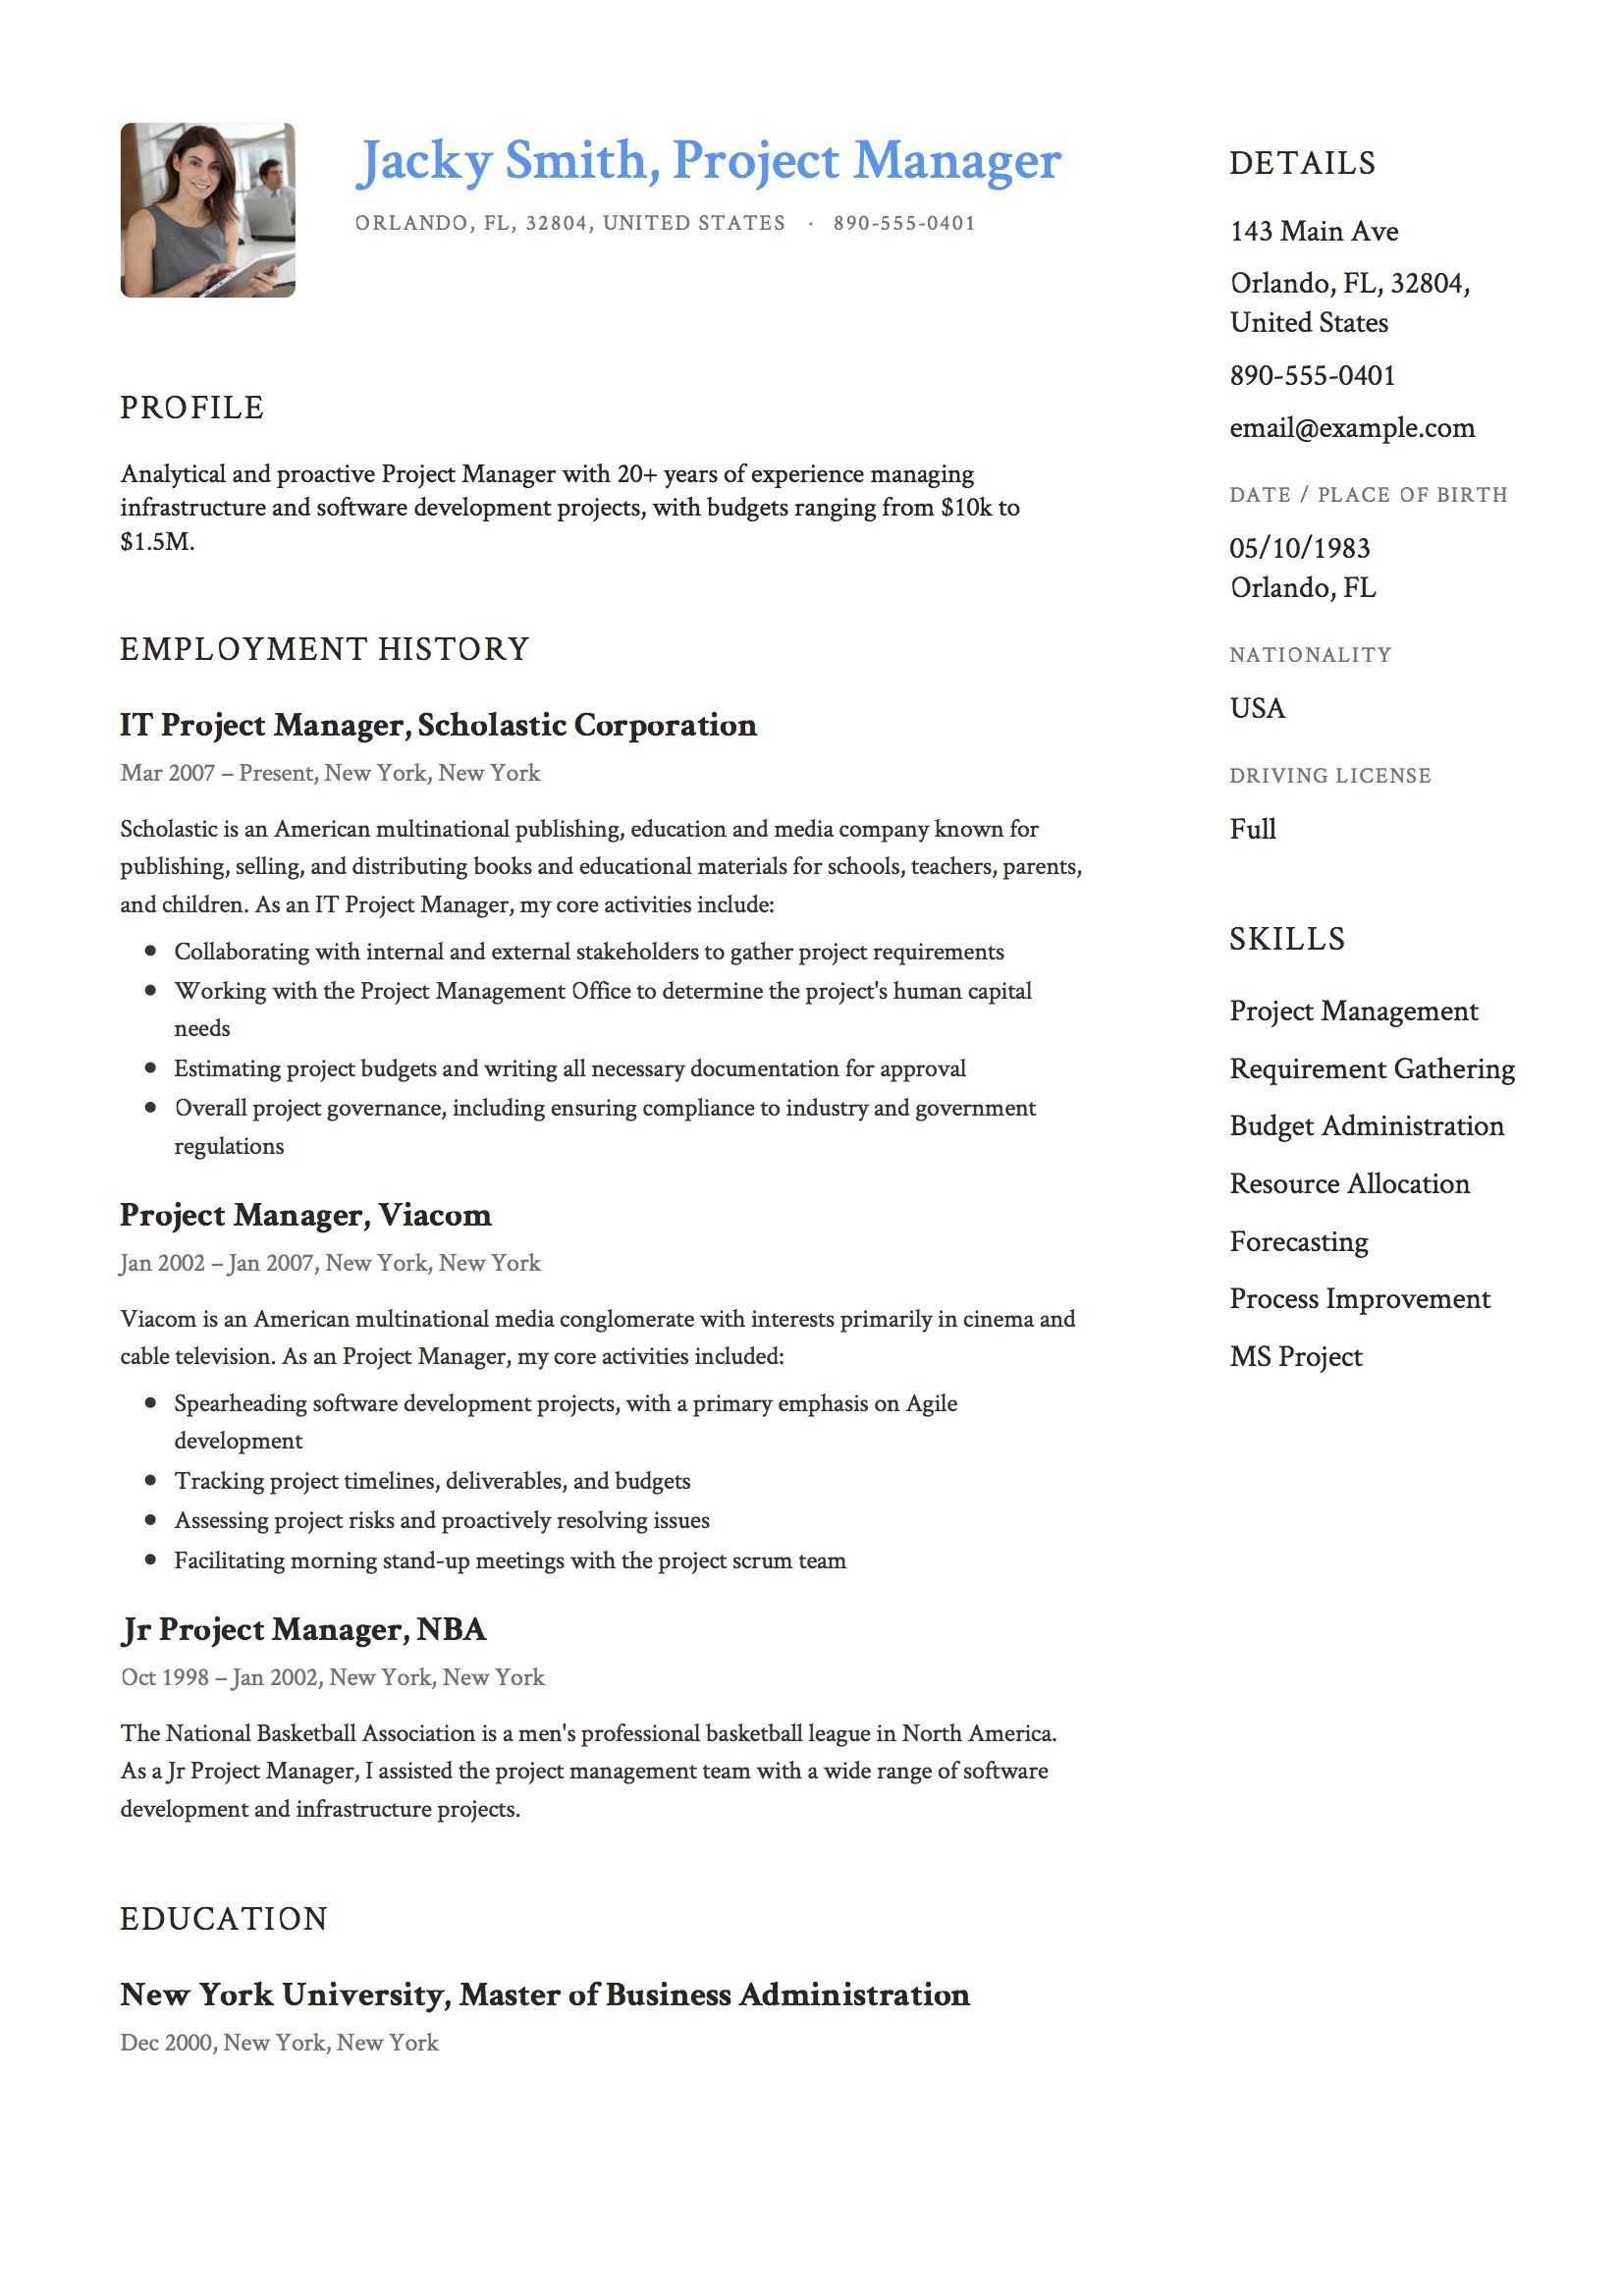 project manager resume example management software development examples marketing Resume Software Development Manager Resume Examples 2020